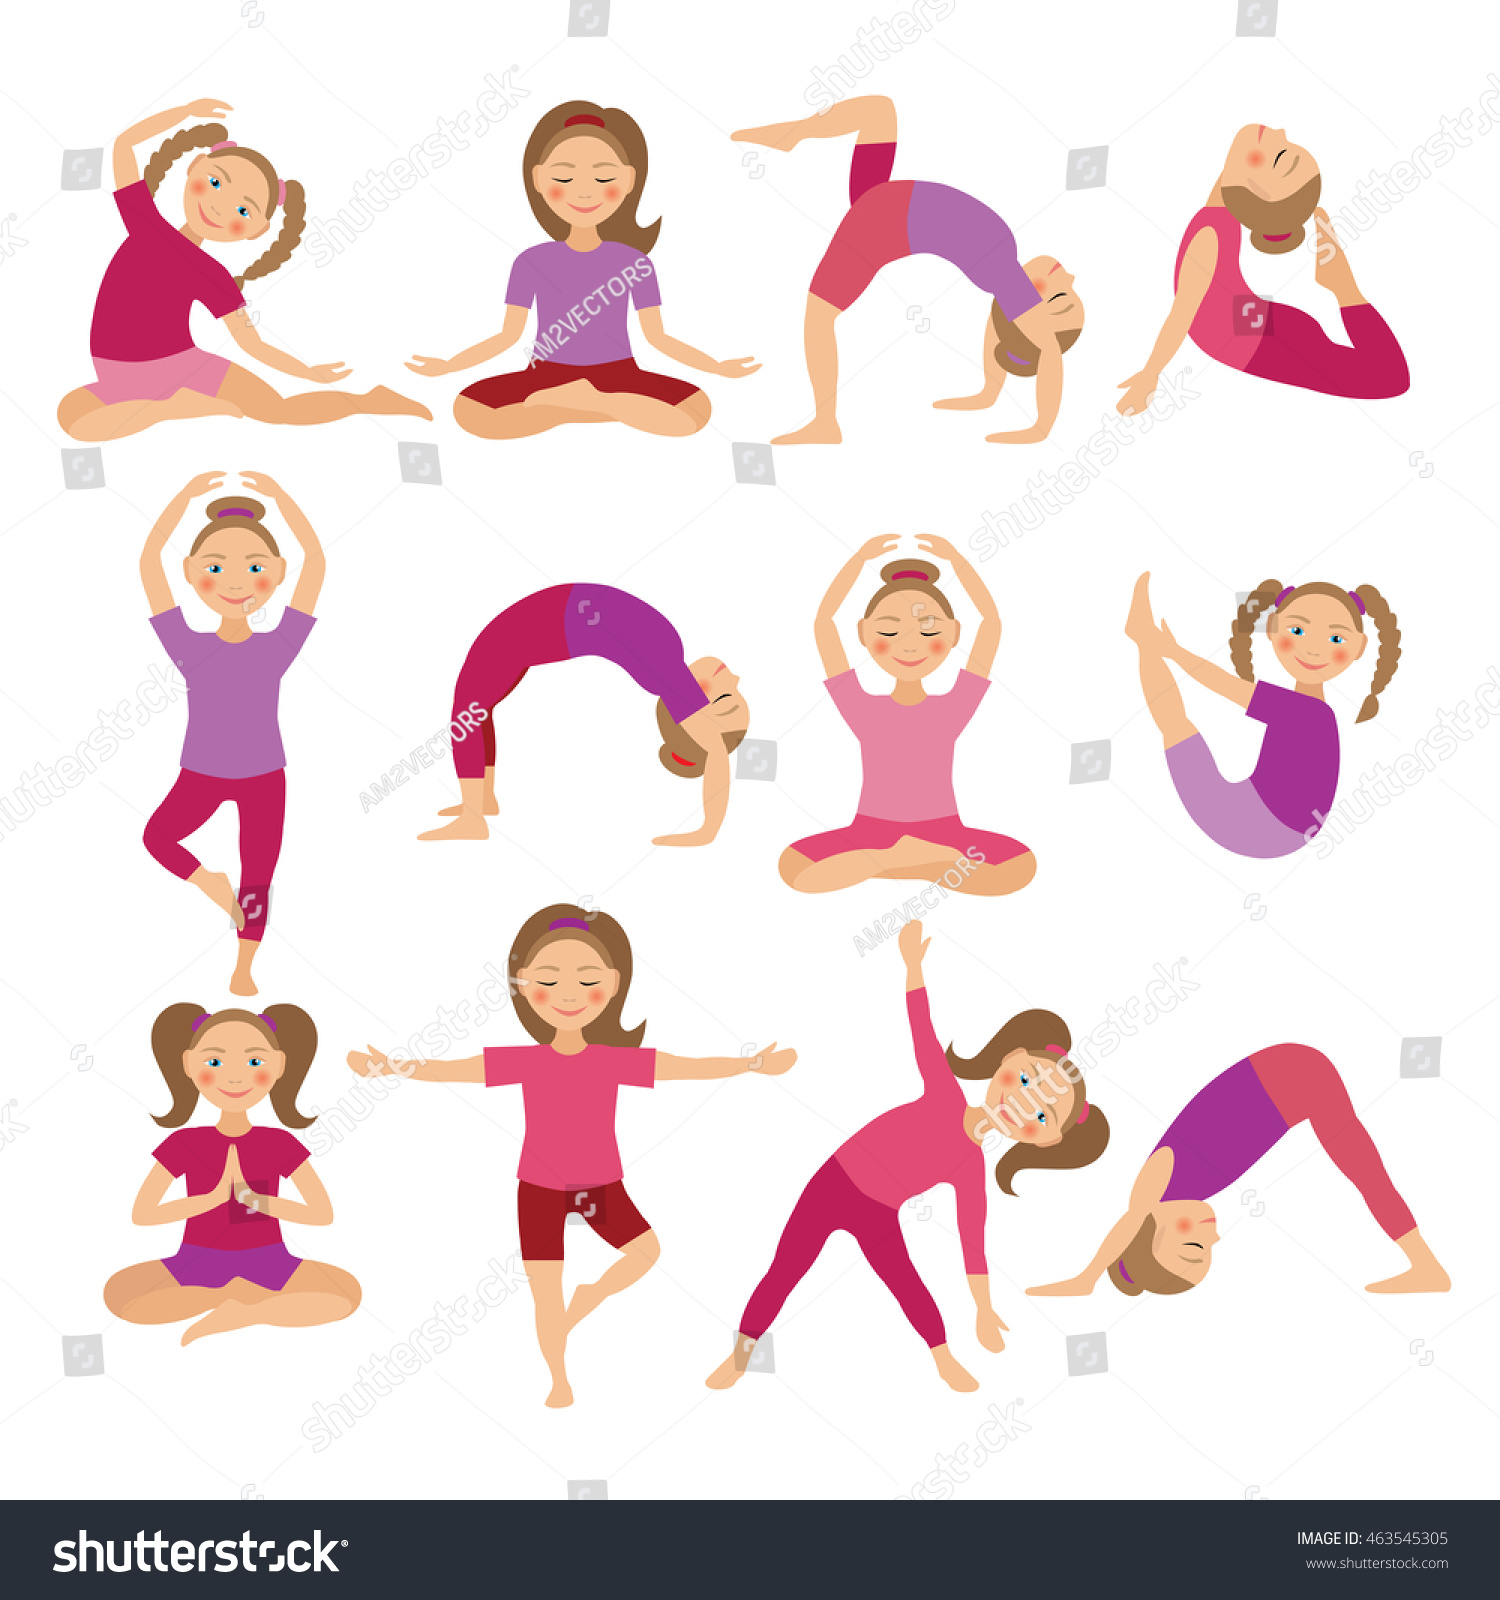 Kids Yoga Poses Illustration Child Doing Stock Illustration